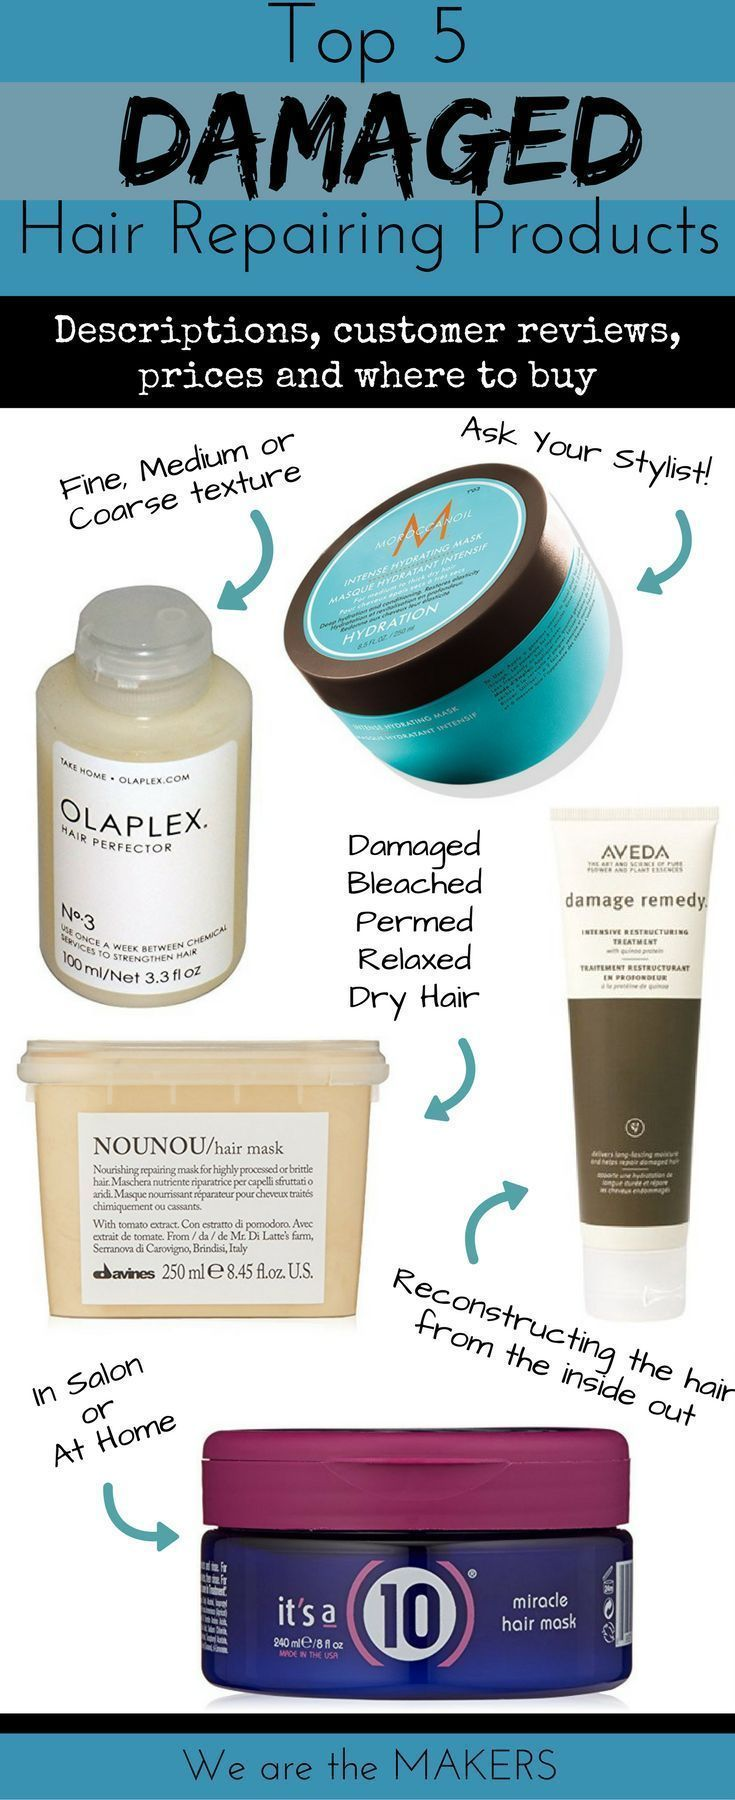 Top 5 Products for Damaged Hair Repair #hairstuff